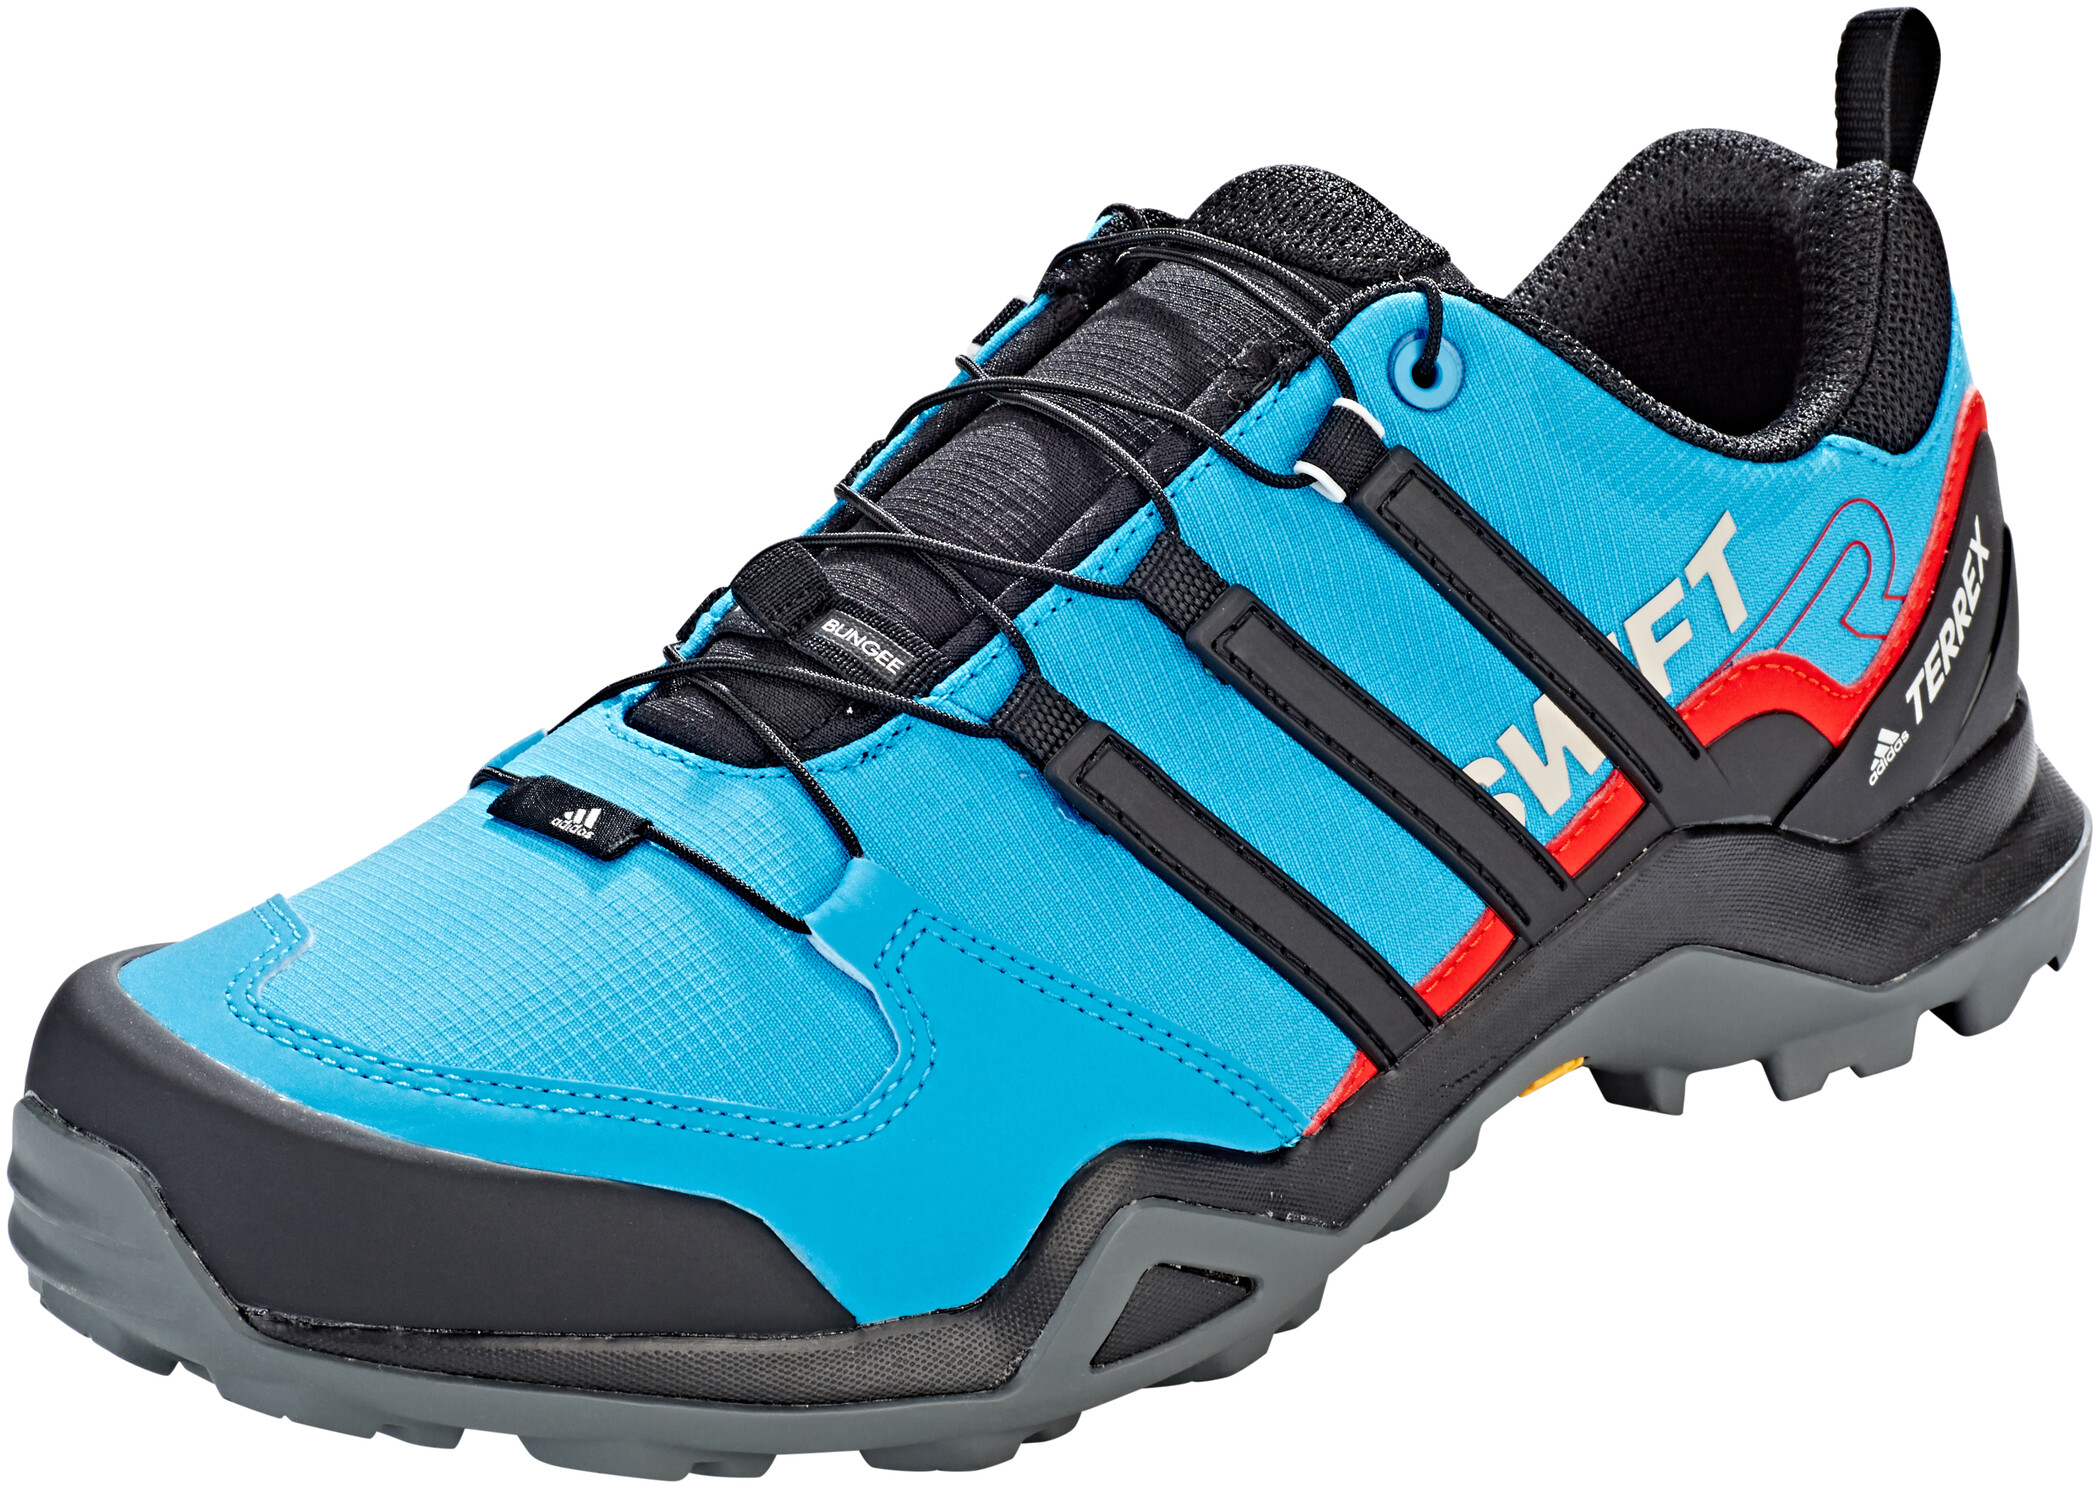 2fe6b2b918 adidas_TERREX_Swift_R2_Shoes_Herren_shock_cyan_core_black_active_red.jpg